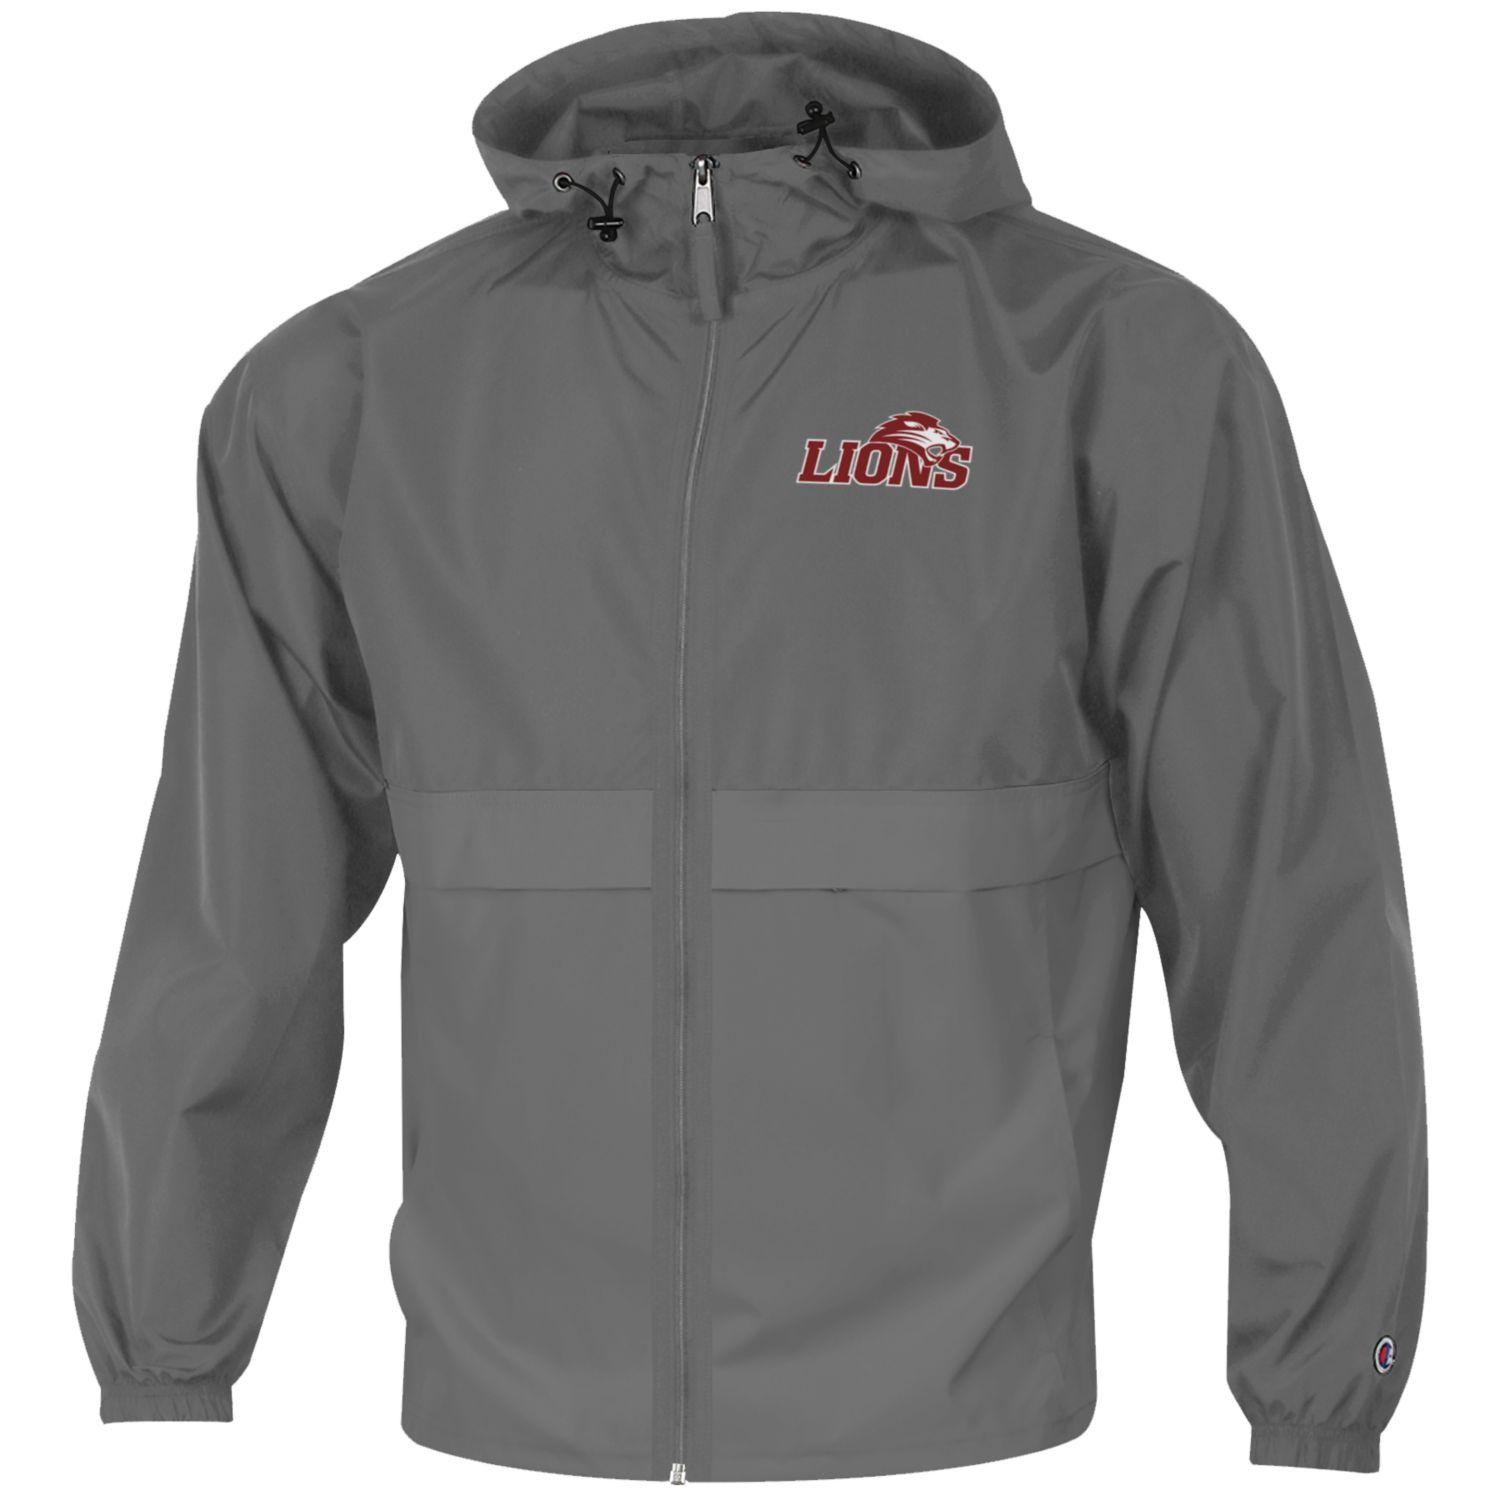 Lions Lightweight Full Zip